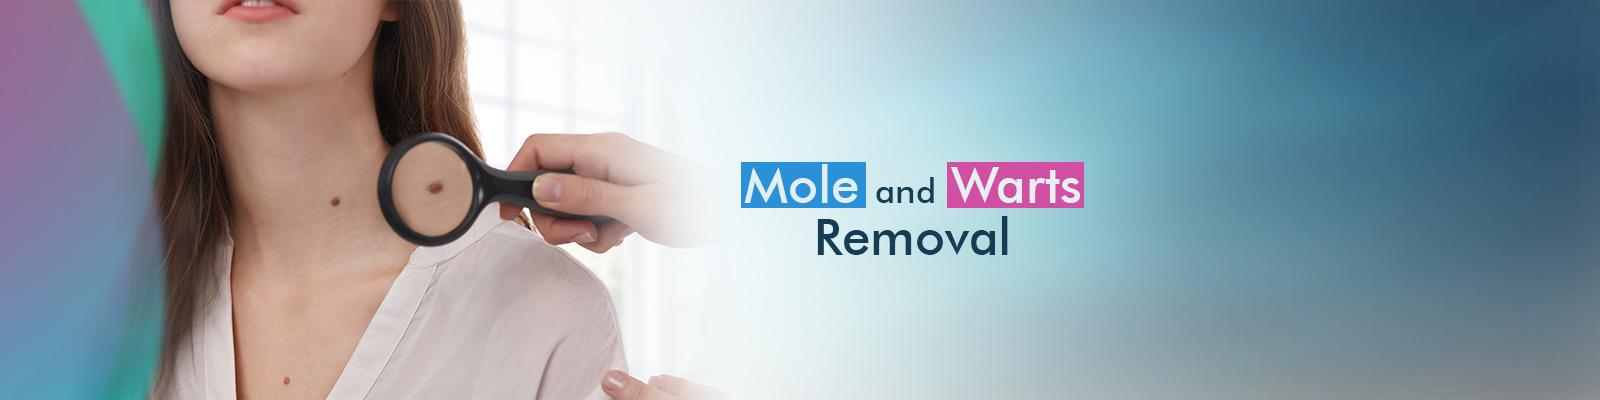 Painless Laser Mole And Wart Removal